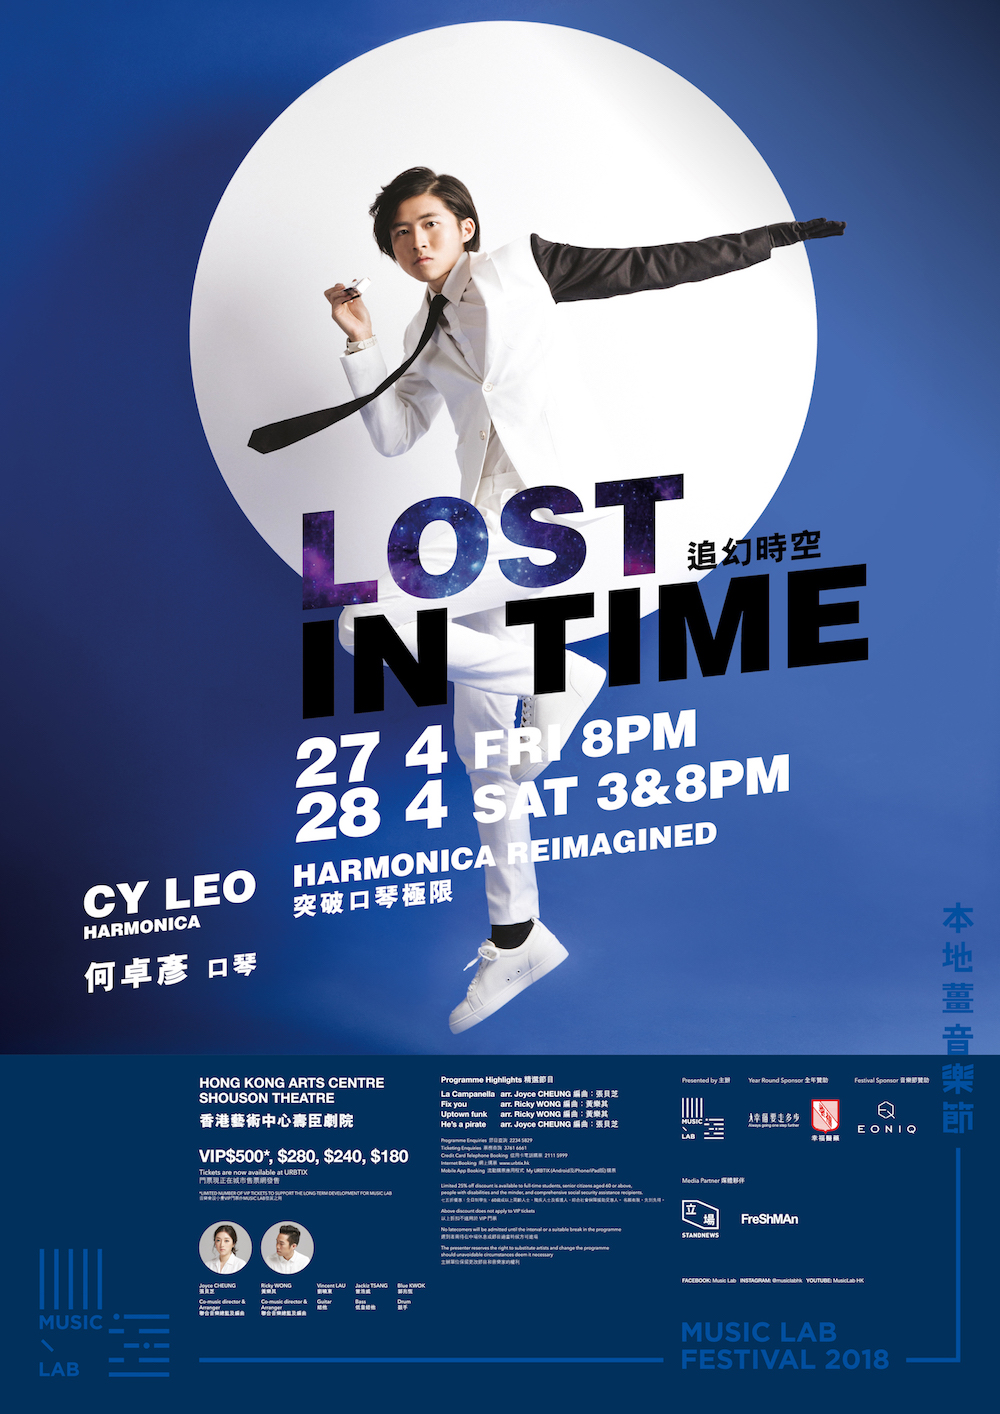 Lost in Time - Genre: Crossover PopDate: 27 April 2018 | 8pm          28 April 2018 | 3 & 8pmVenue: Hong Kong Arts Centre, Shousan TheatreMusicians: CY LEO, Joyce CHEUNG, Ricky WONGHarmonica world champion CY Leo will lead the project Lost in Time  to start off our Music Lab Festival 2018. CY promises to deliver smashingly pleasurable listening experience by infusing the boundaries of signature pops in different eras, to be lost in time from classics to the modern pop.Lost in Time assembles the greatest hits of pop from different eras, to be arranged by jazz arrangers, Joyce Cheung and Ricky Wong. The production on one hand reviews the timeless value of music, while experiments the capacity of the harmonica to deliver a spectrum of music genres in different ages on the other. The performance will also be aided by multimedia projections and sets, to portray creative and stylistic elements in different eras.